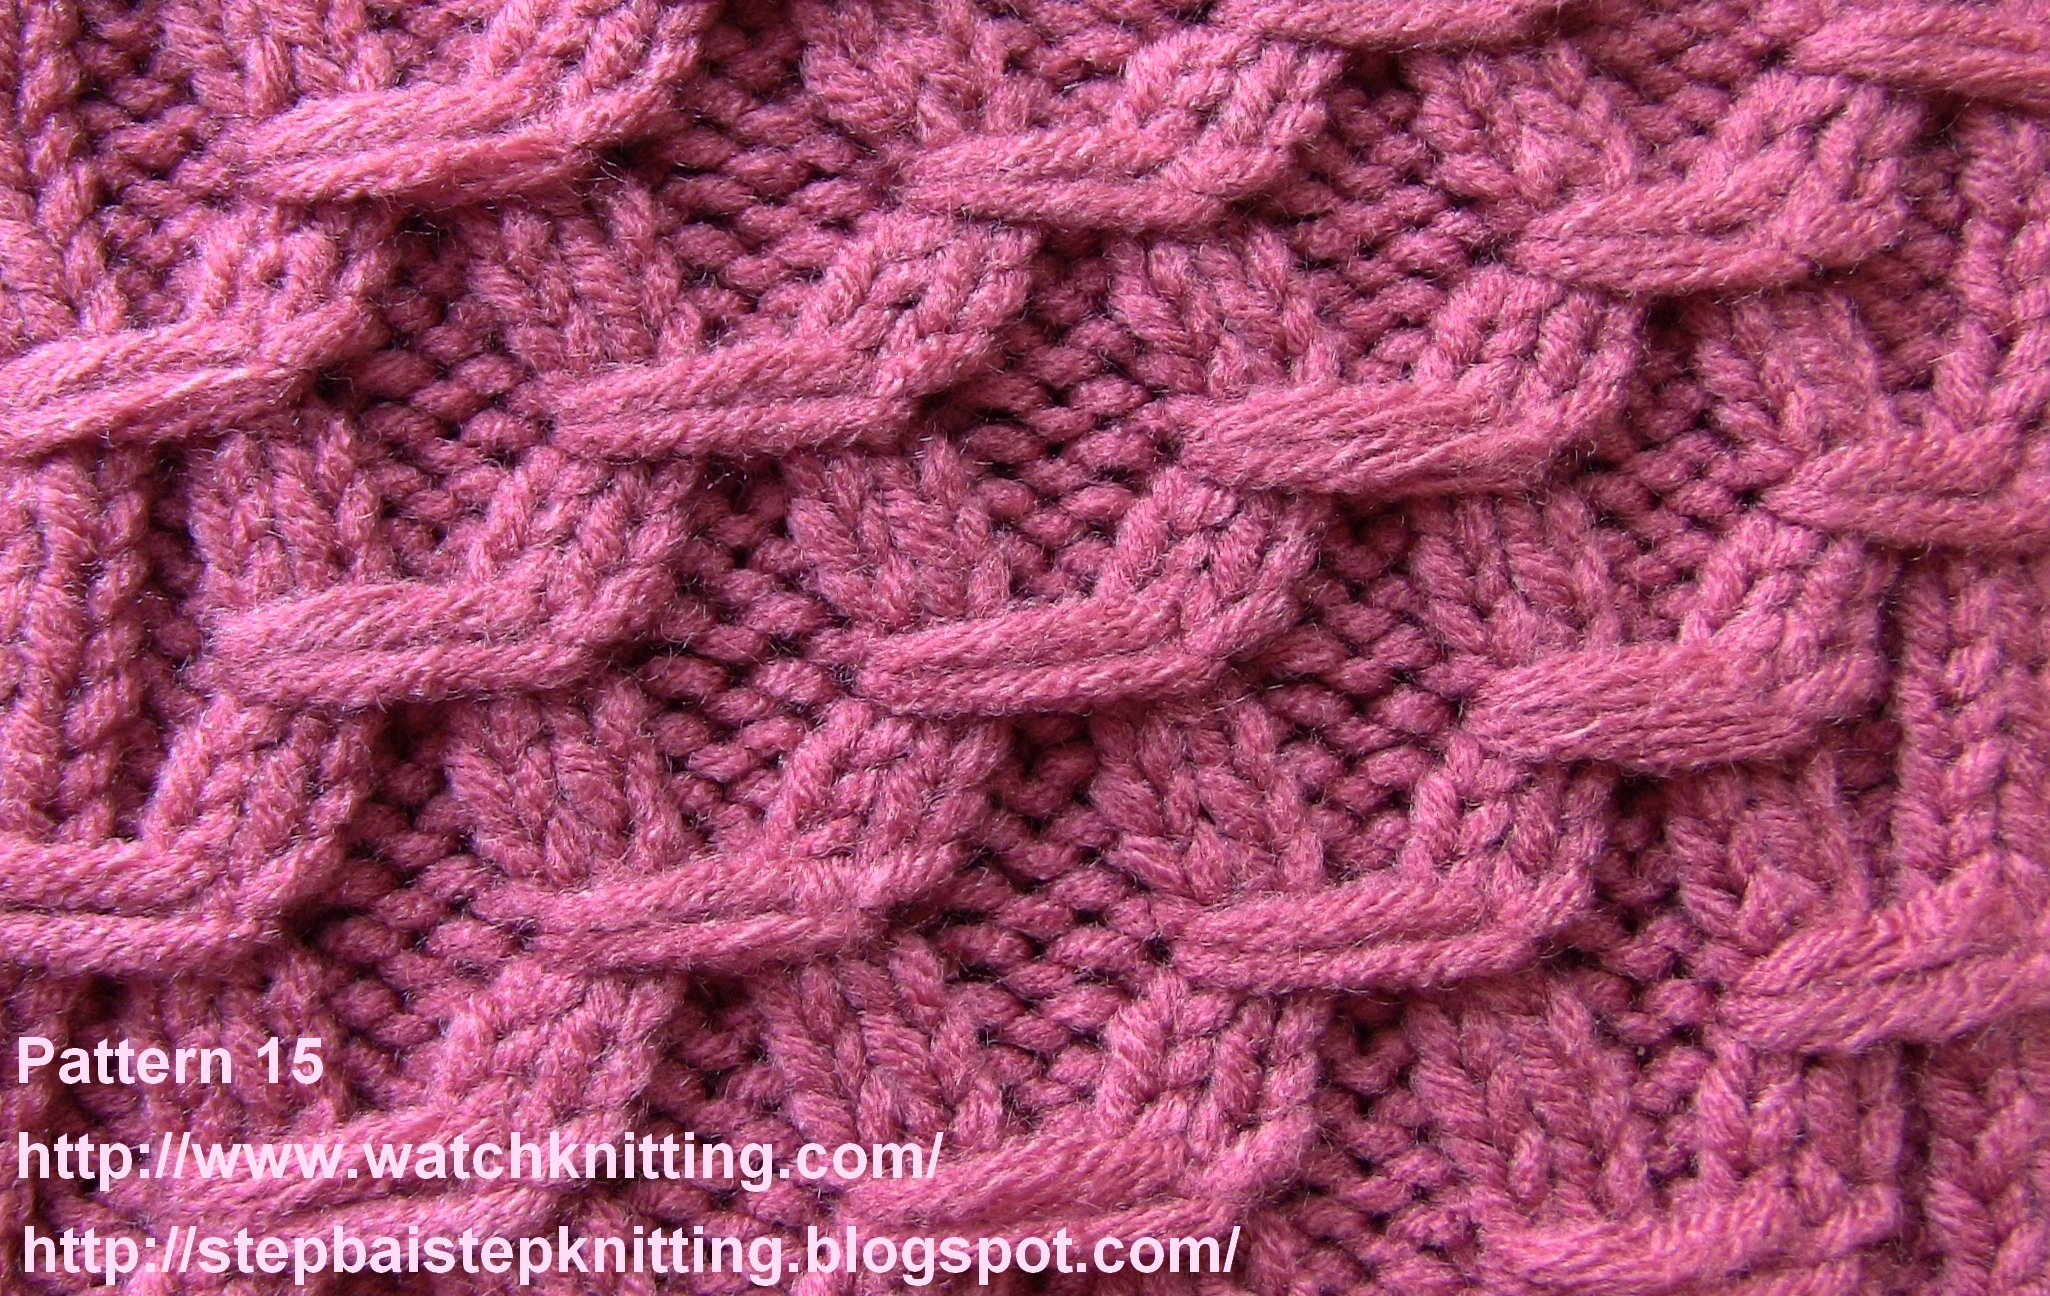 Design Knitting Patterns : Embossed Knitting stitches Watch Knitting